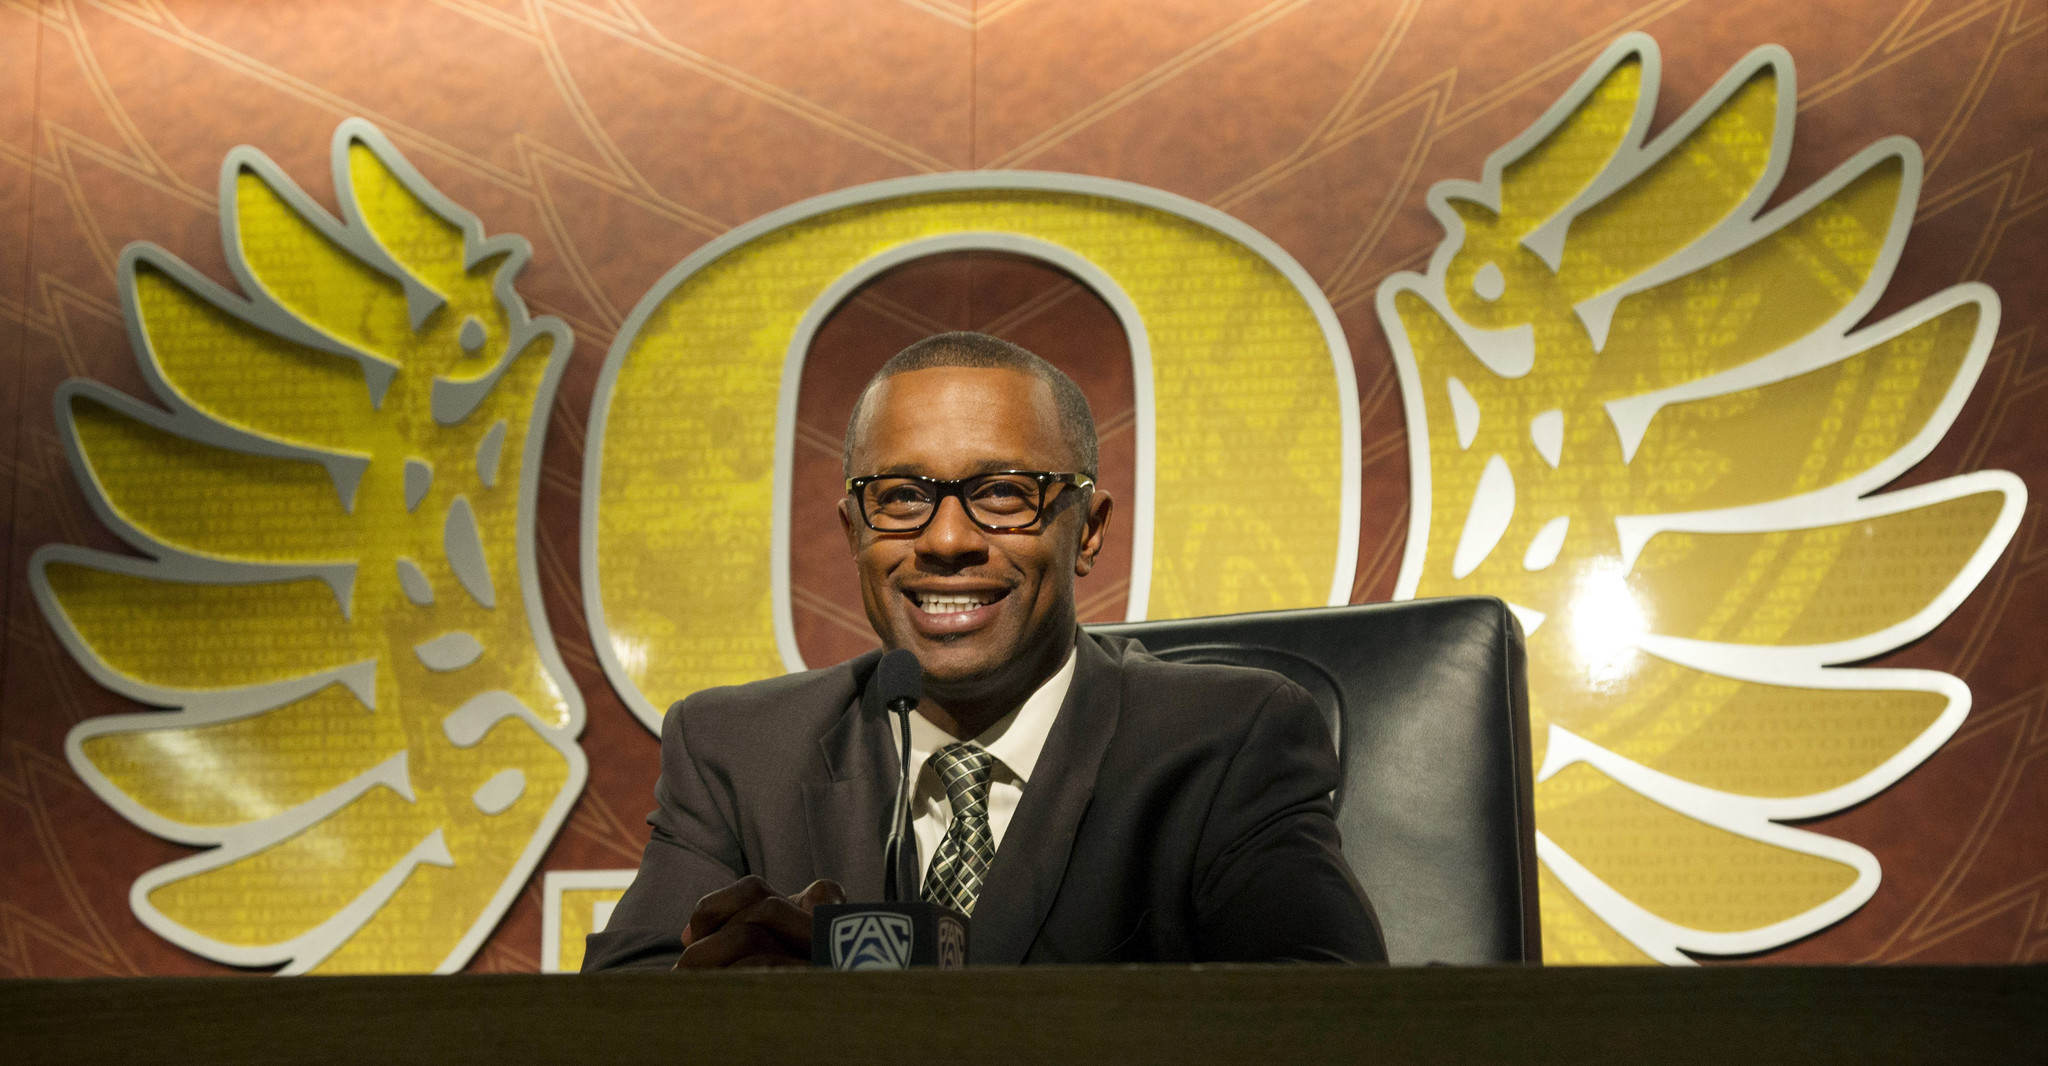 Os-sp-oregon-willie-taggart-0219